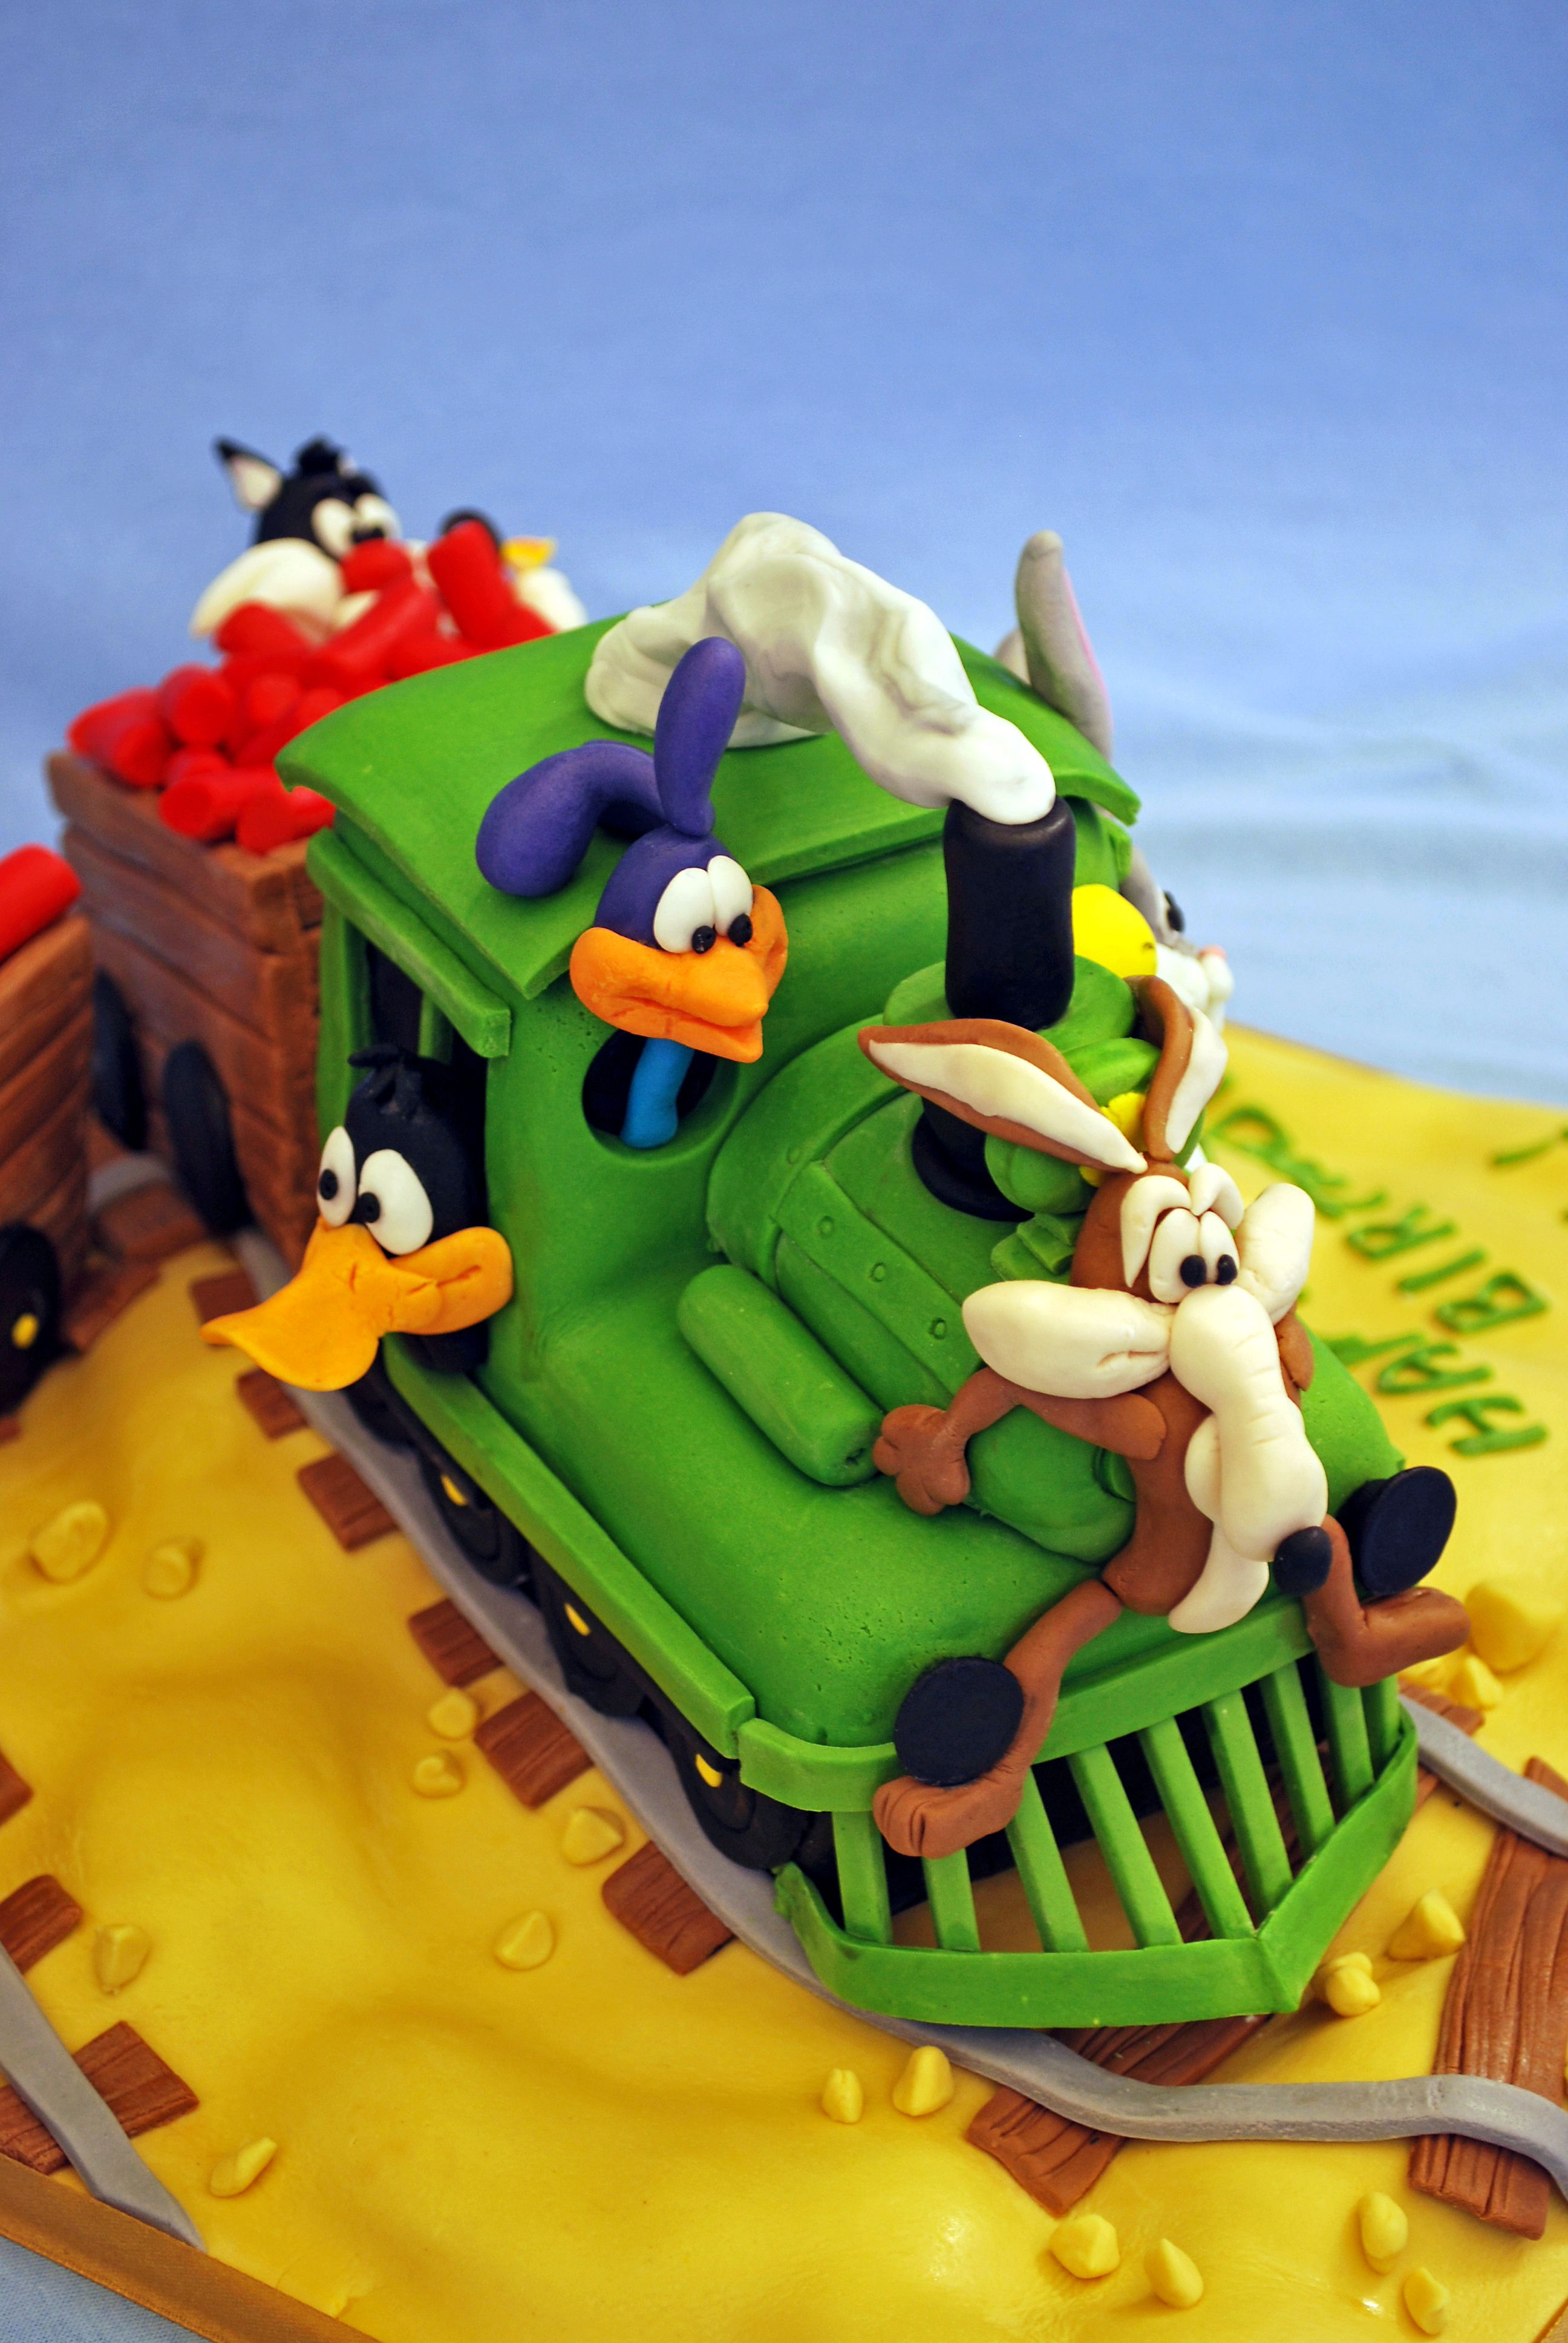 Birthday Cake Photos Looney Tunes Characters On A Train Journey - Cartoon birthday cake images